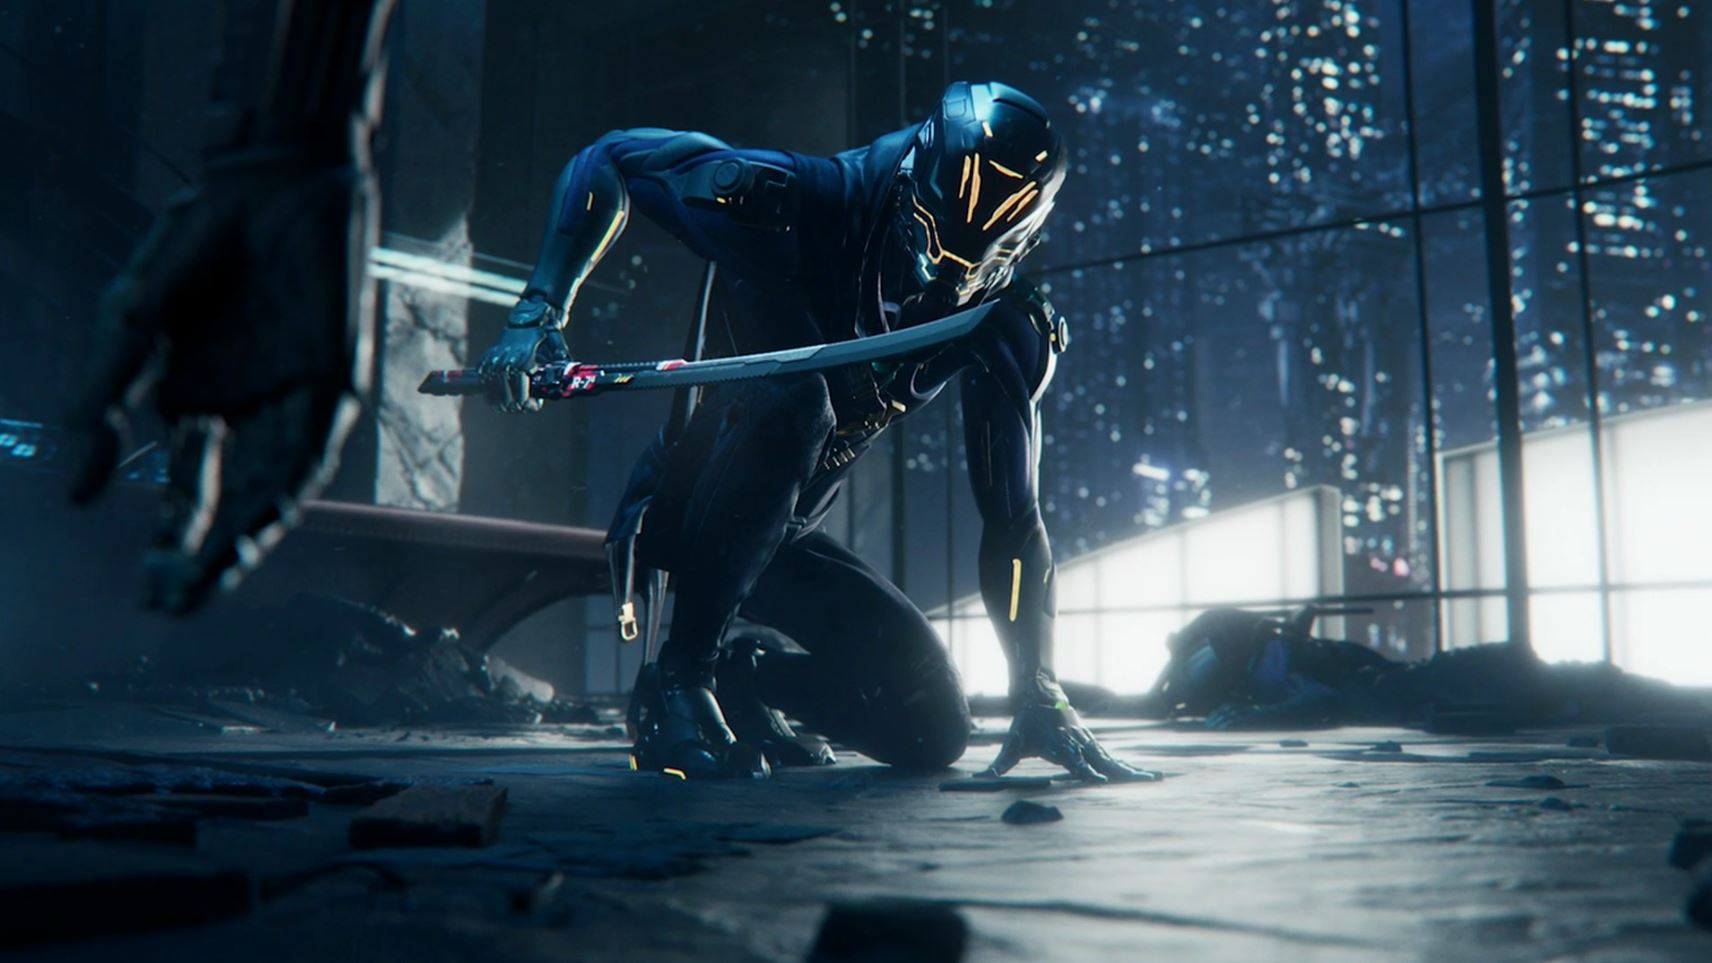 ghostrunner-2-in-development-for-ps5-with-5-million-euro-initial-budget